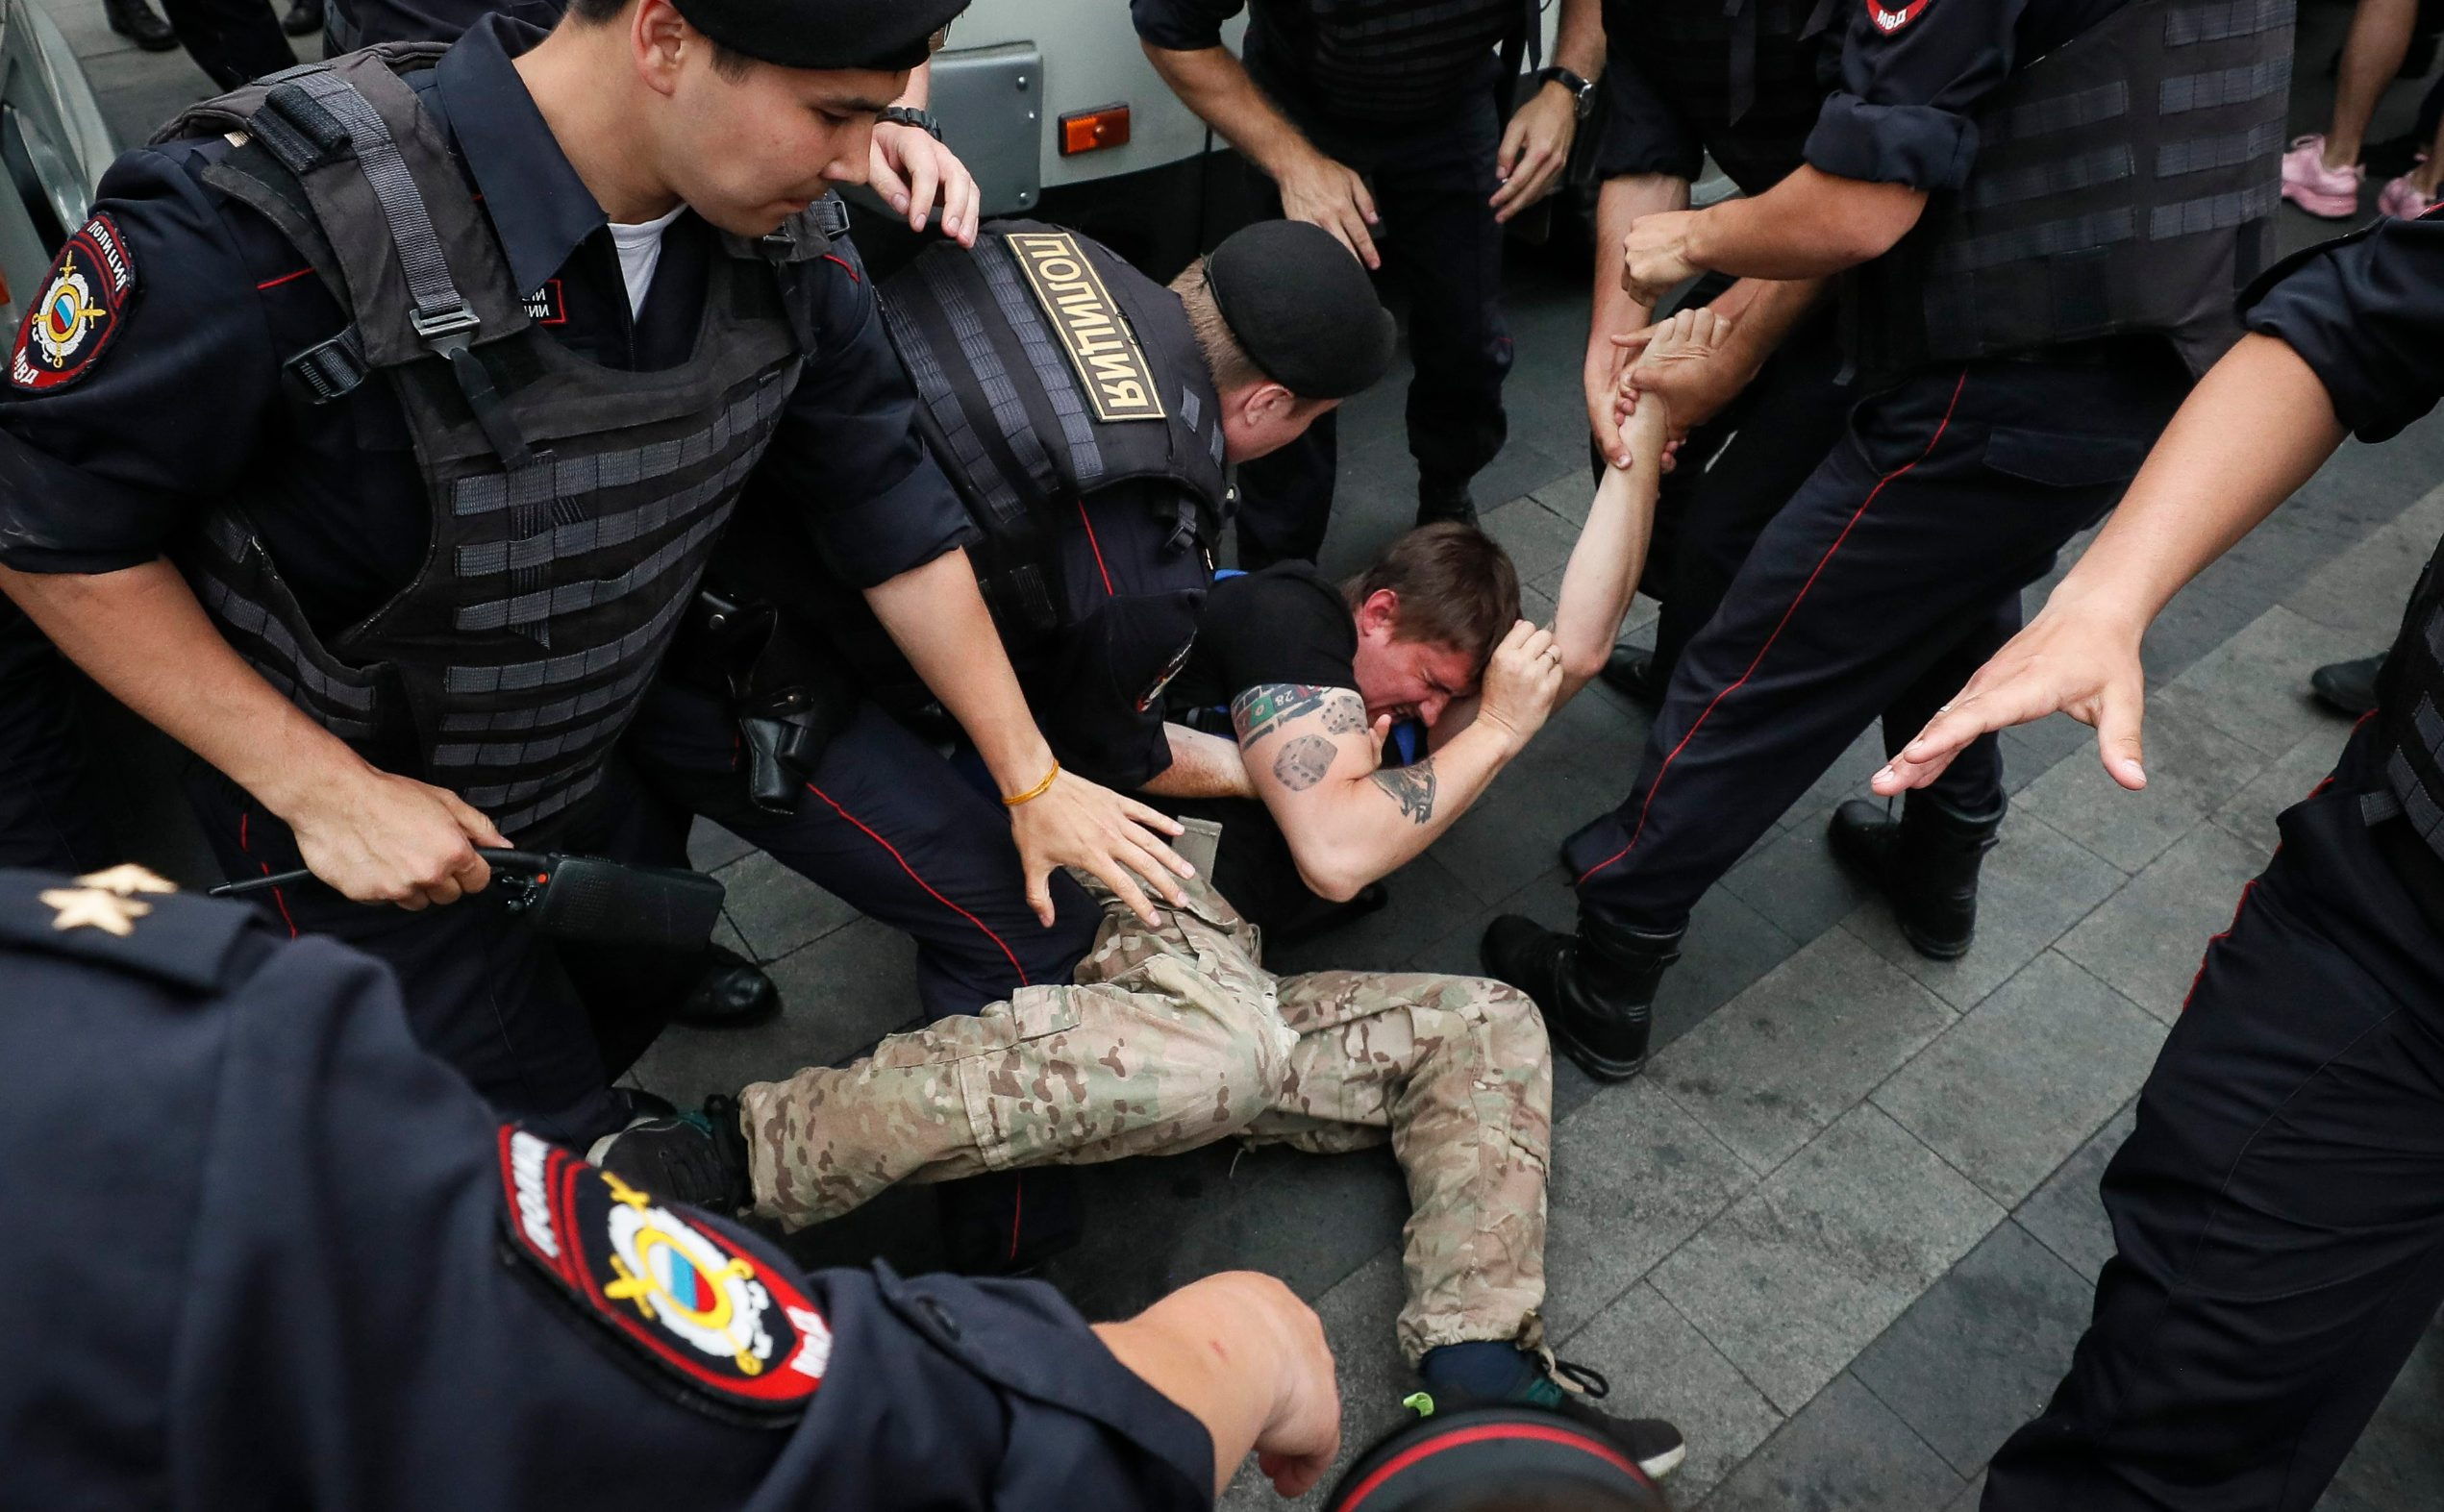 2019-06-12T143359Z_395462796_UP1EF6C14GN2K_RTRMADP_3_RUSSIA-JOURNALIST-PROTESTS